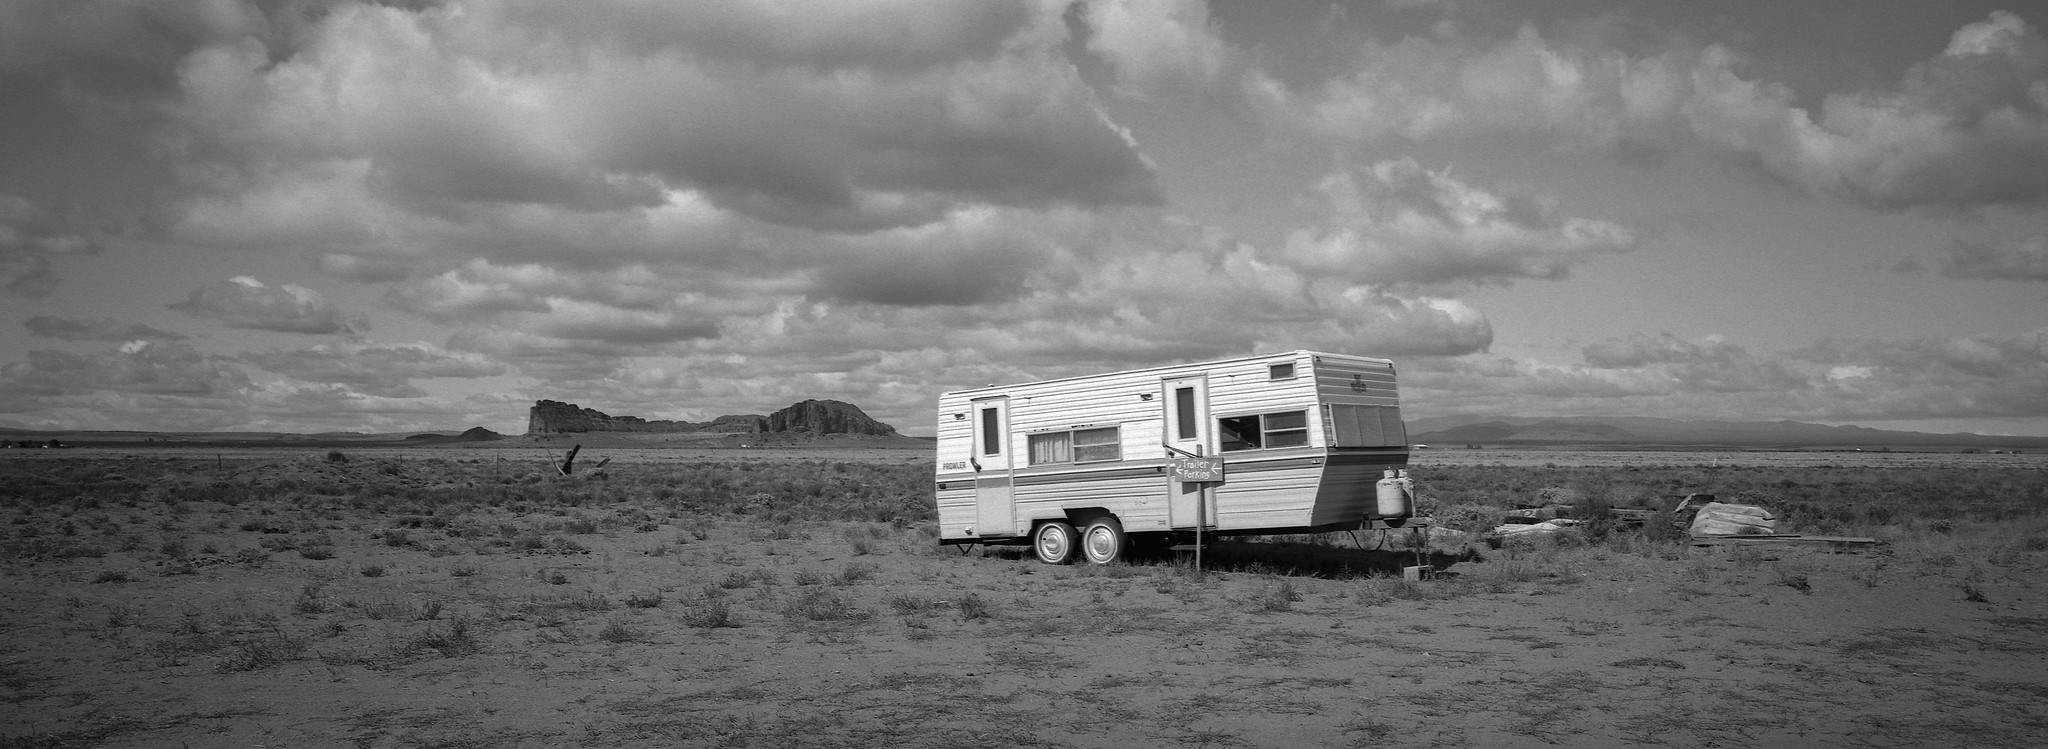 Trailer, Fort Rock, Oregon | by austin granger